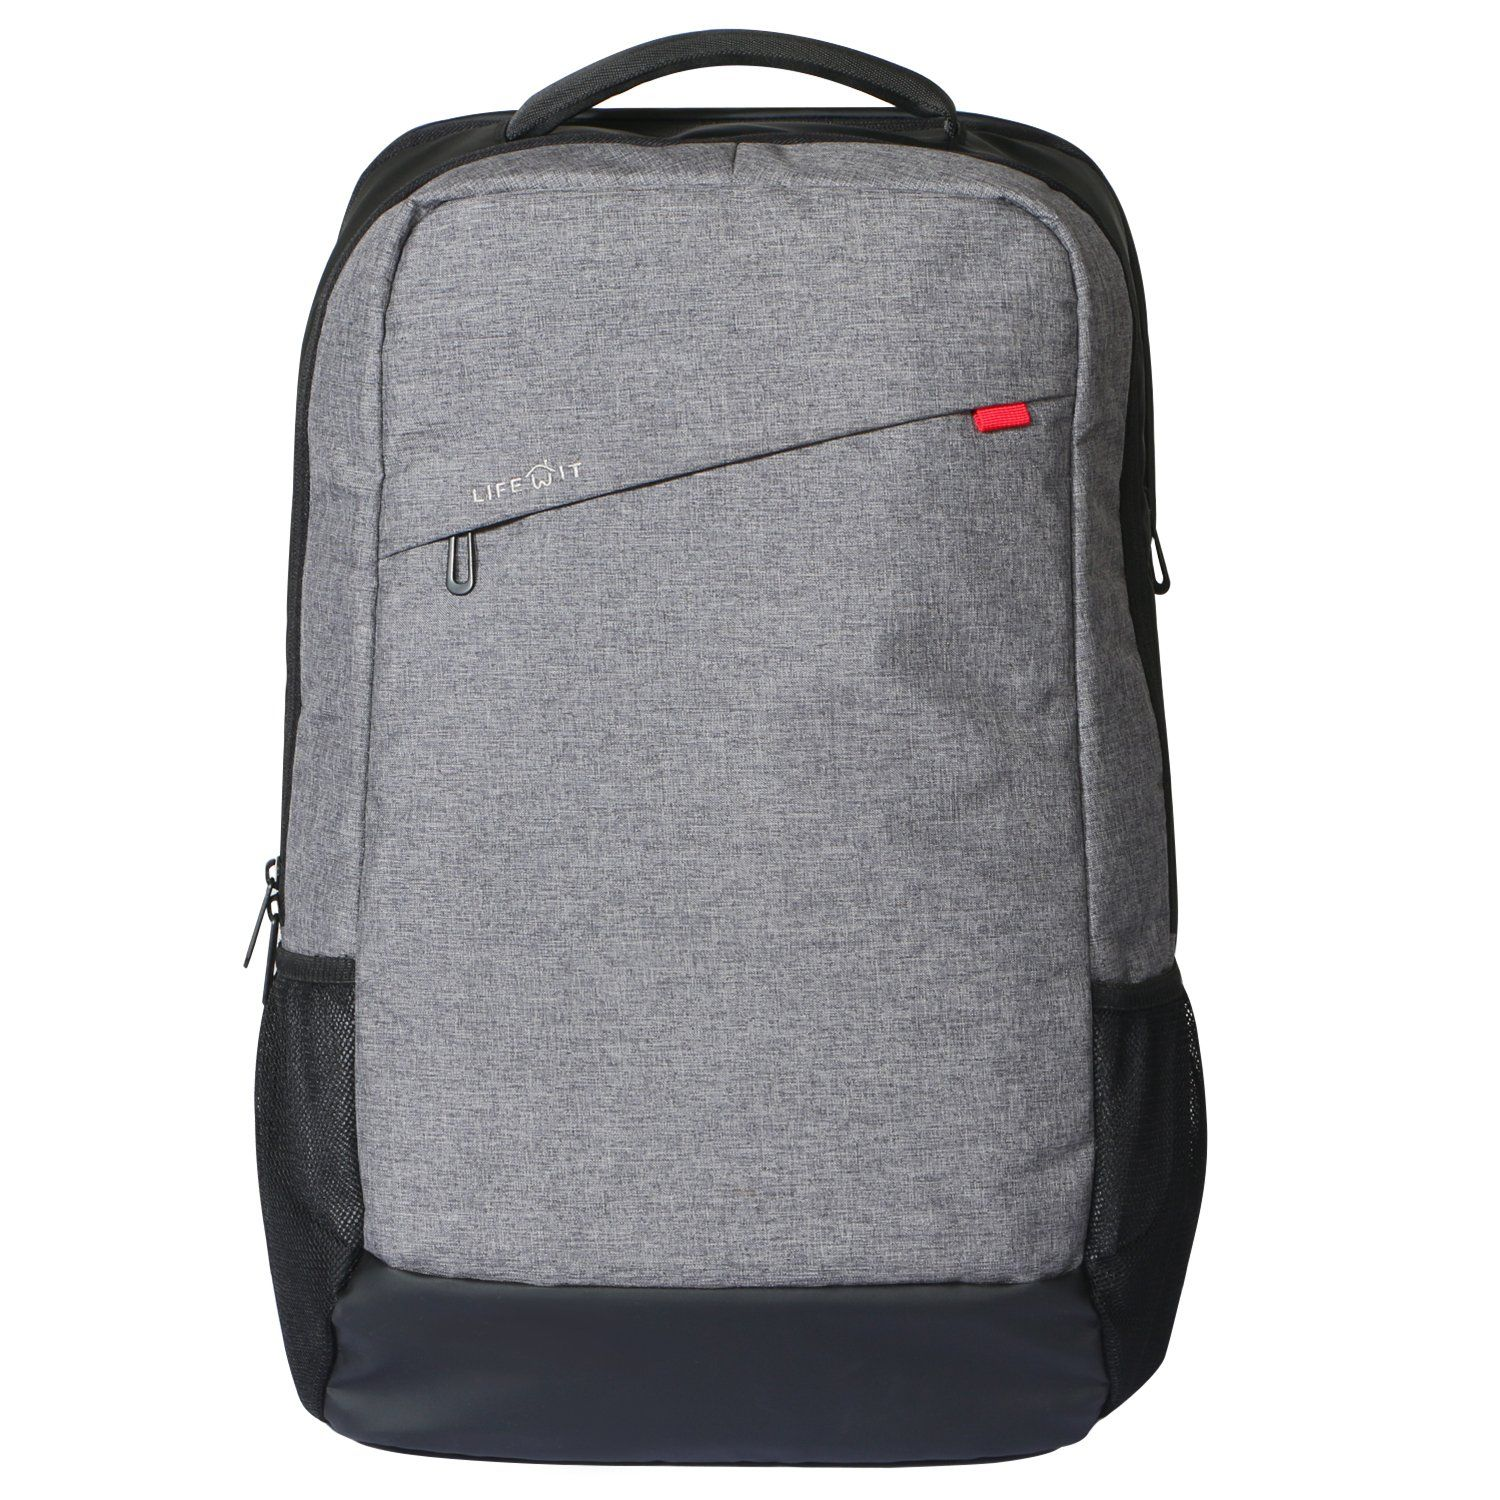 Lifewit Men Large Laptop Backpack Lightweight Slim Travel Business Computer Bag Fits Up To 17 3 Inch Grey